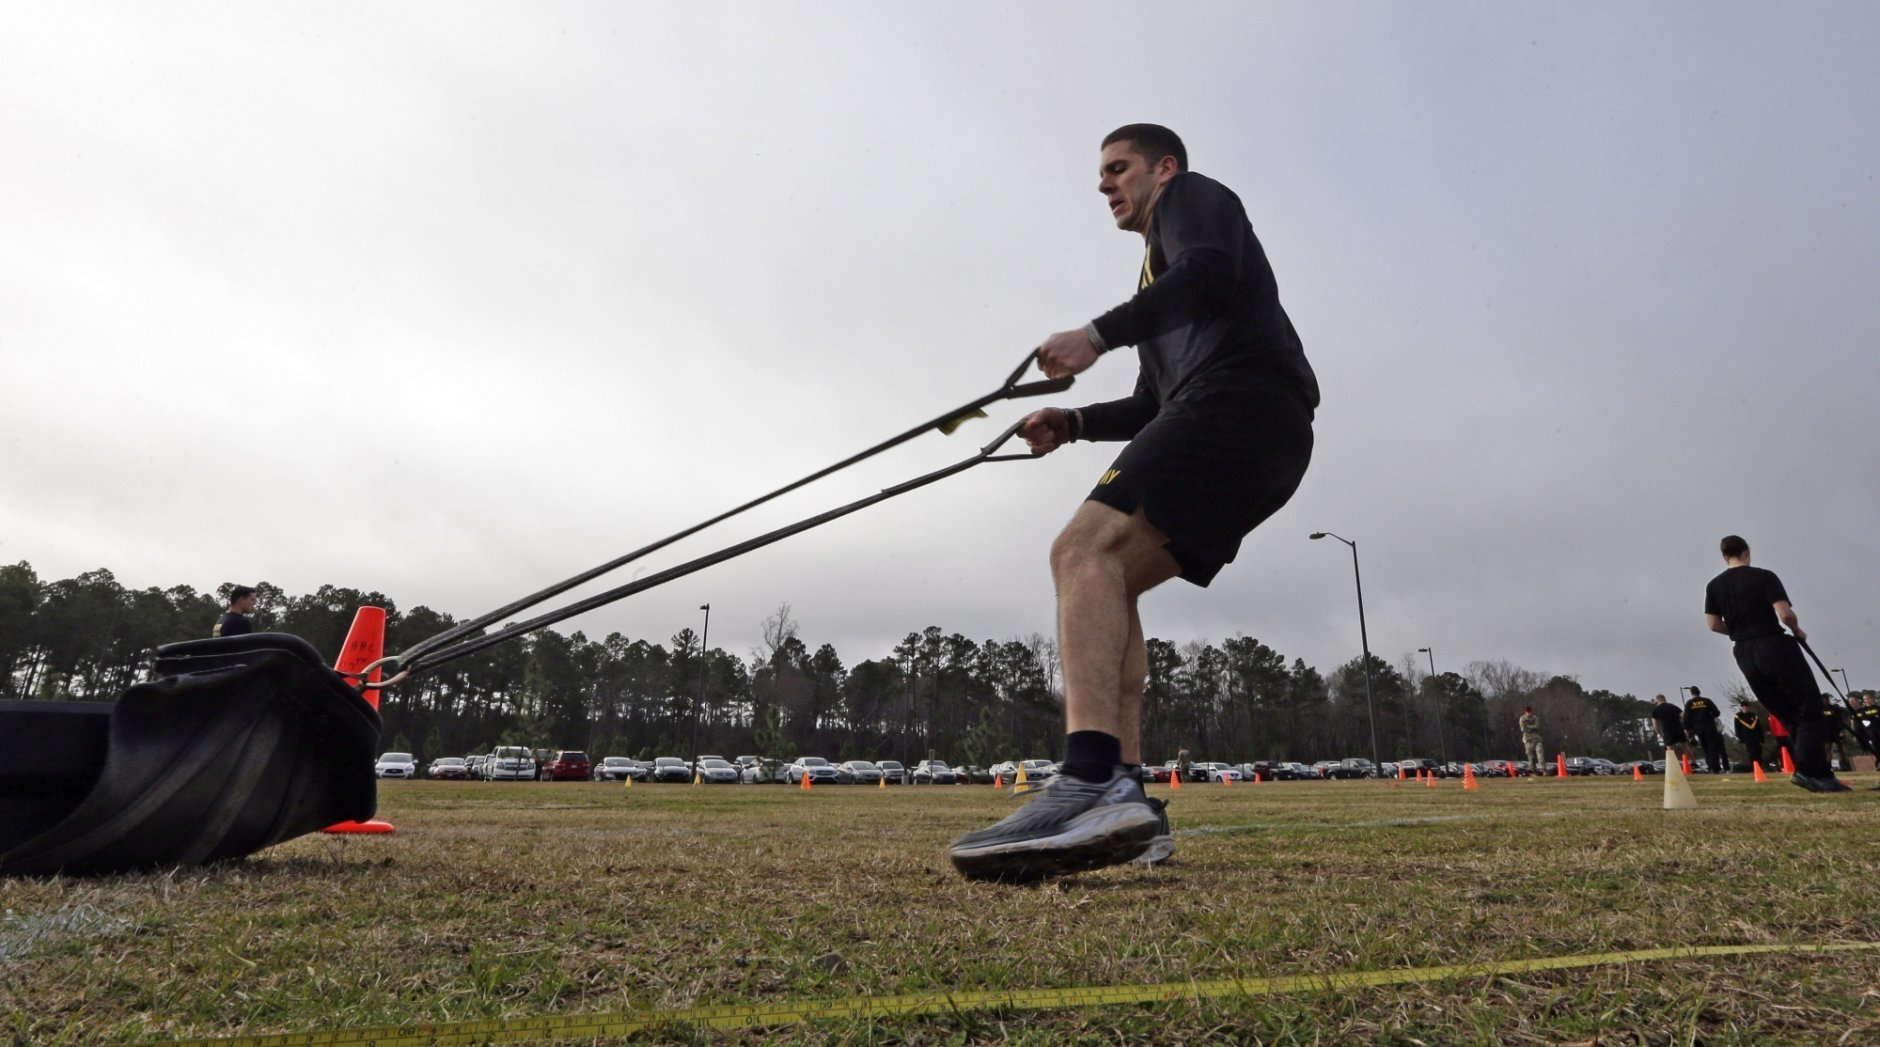 In this Jan. 8, 2019, photo, U.S Army Capt. Aaron Lopez participates while preparing to be an instructor in the new Army combat fitness test at Fort Bragg, N.C. The new test is designed to be a more accurate test of combat readiness than the current requirements. (AP Photo/Gerry Broome)